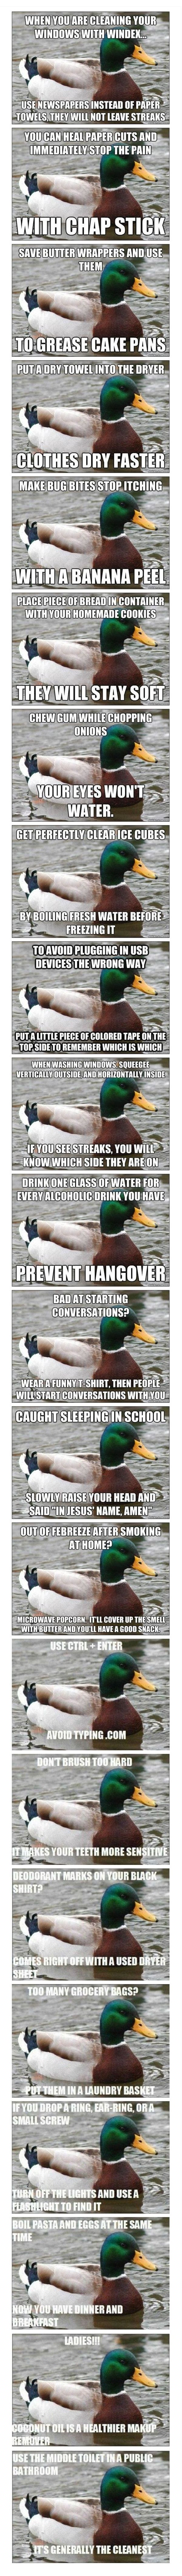 Useful tips from helpful duck